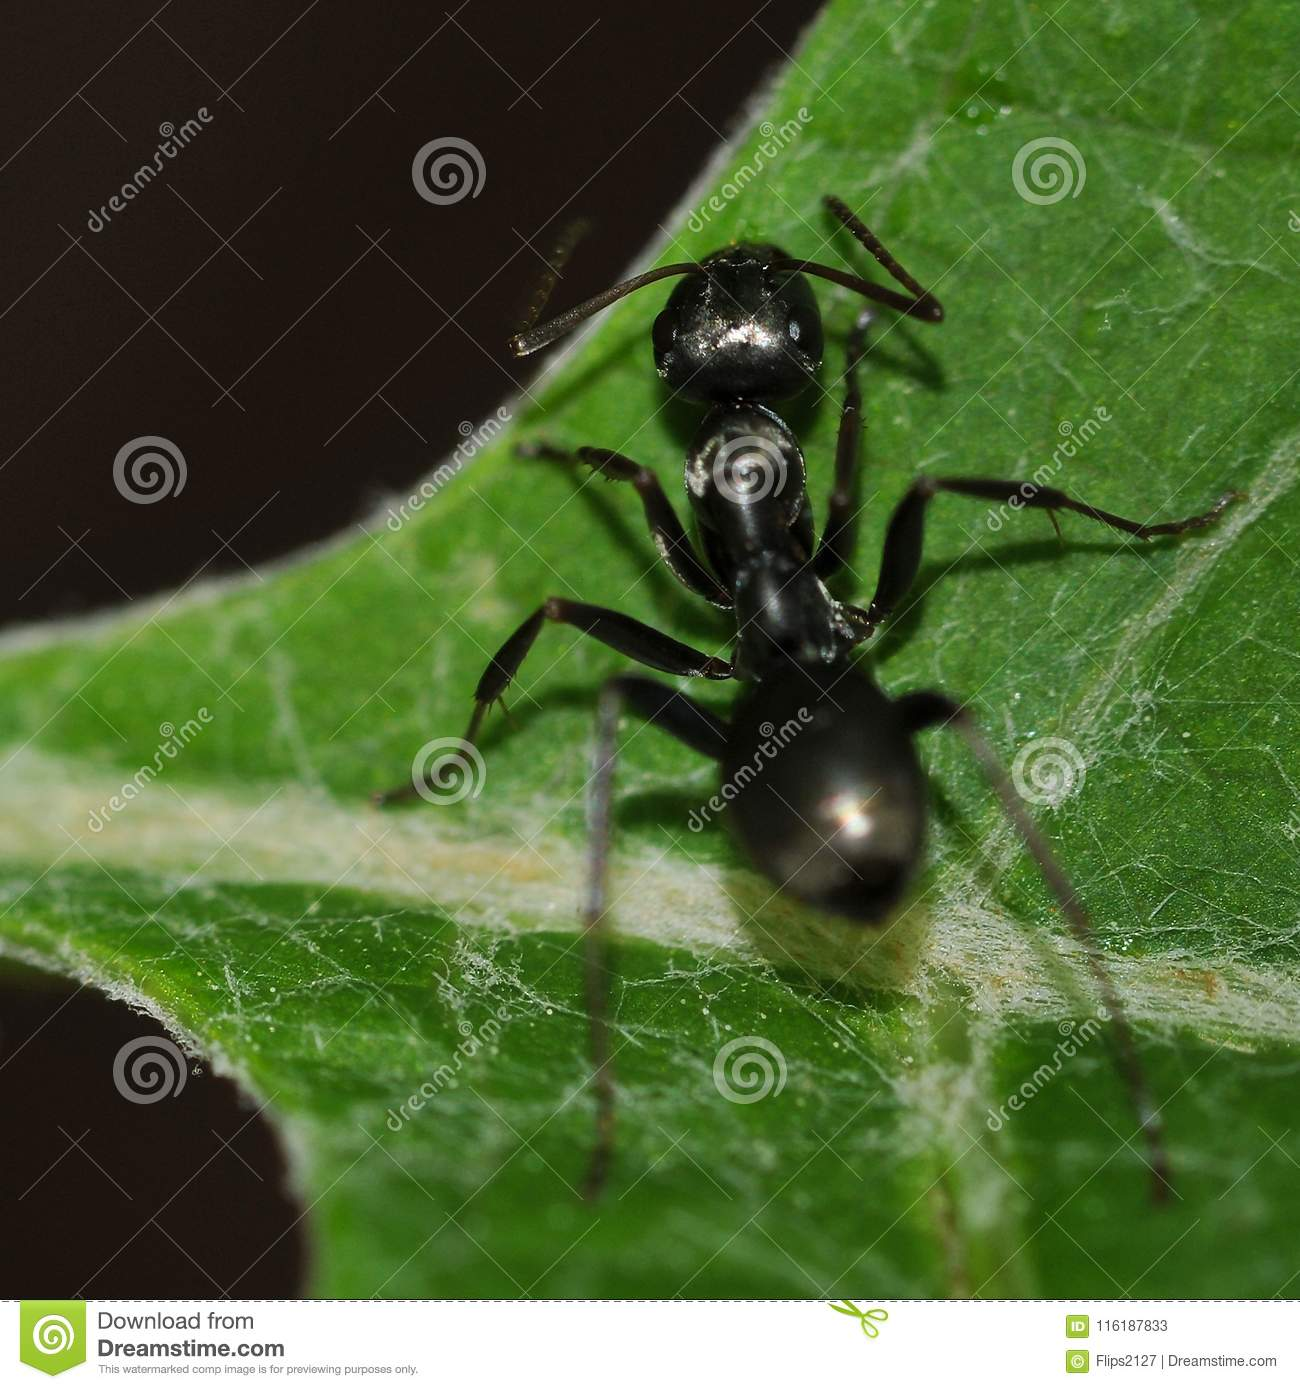 Ant crawling to the edge of a leaf